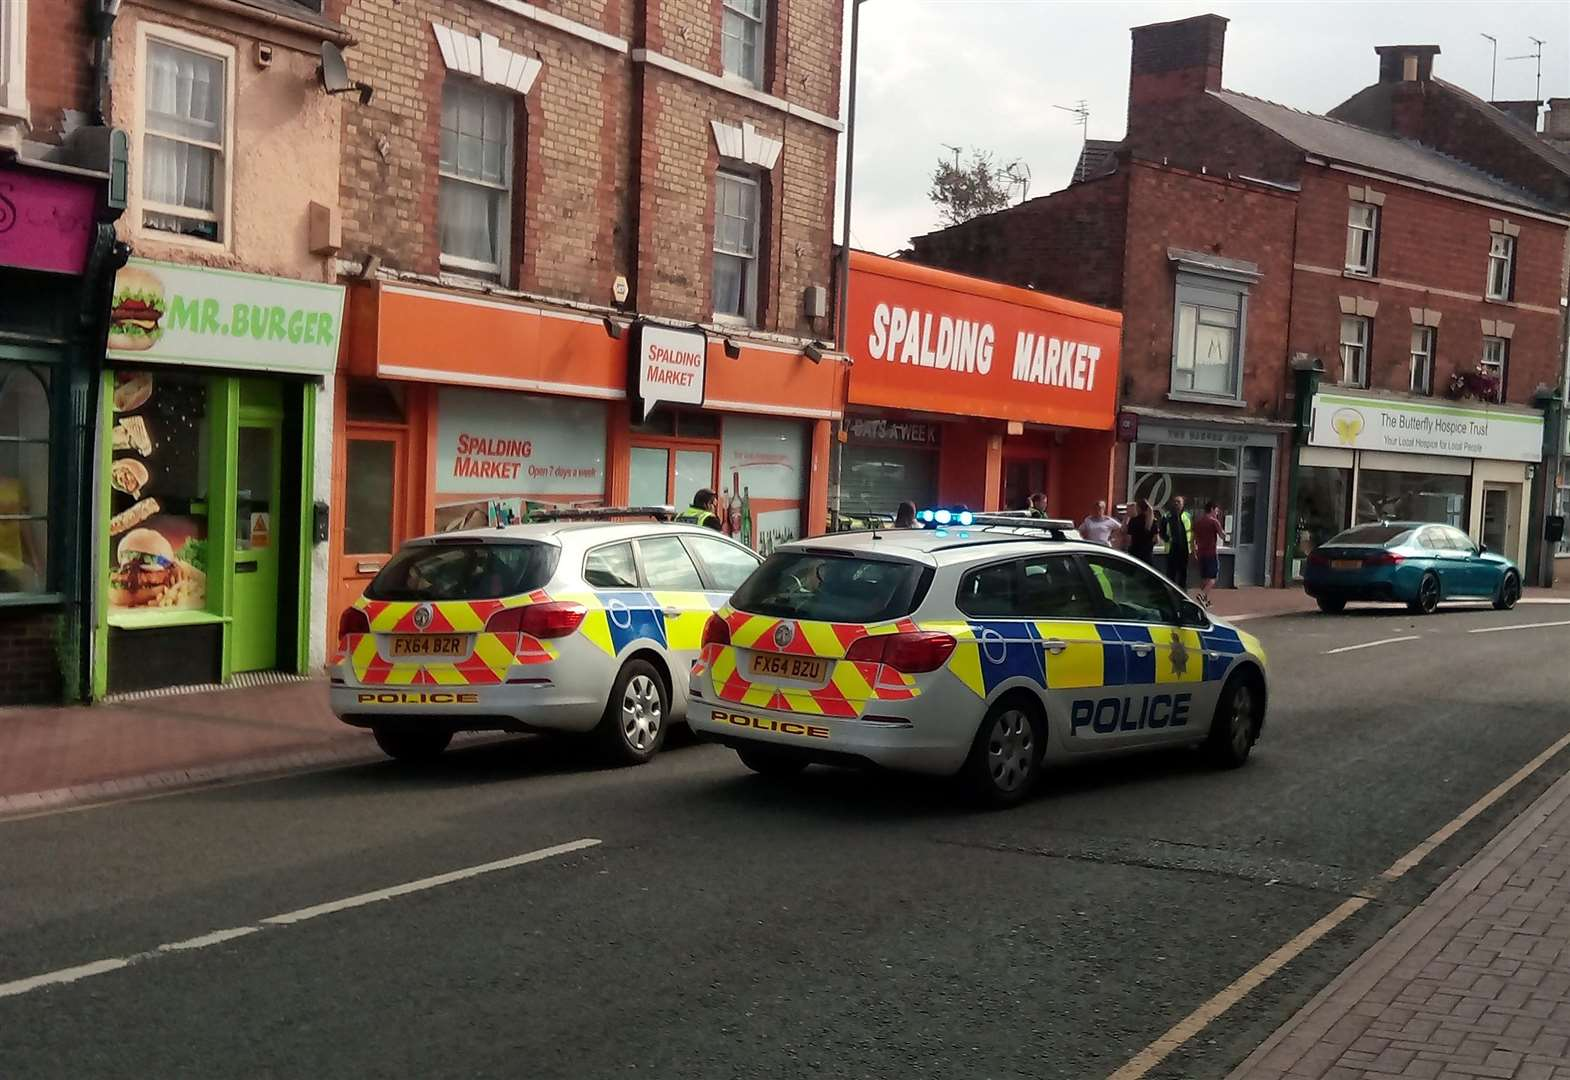 UPDATE FRIDAY 3.55PM: Police link five assaults with police officer attack in Spalding